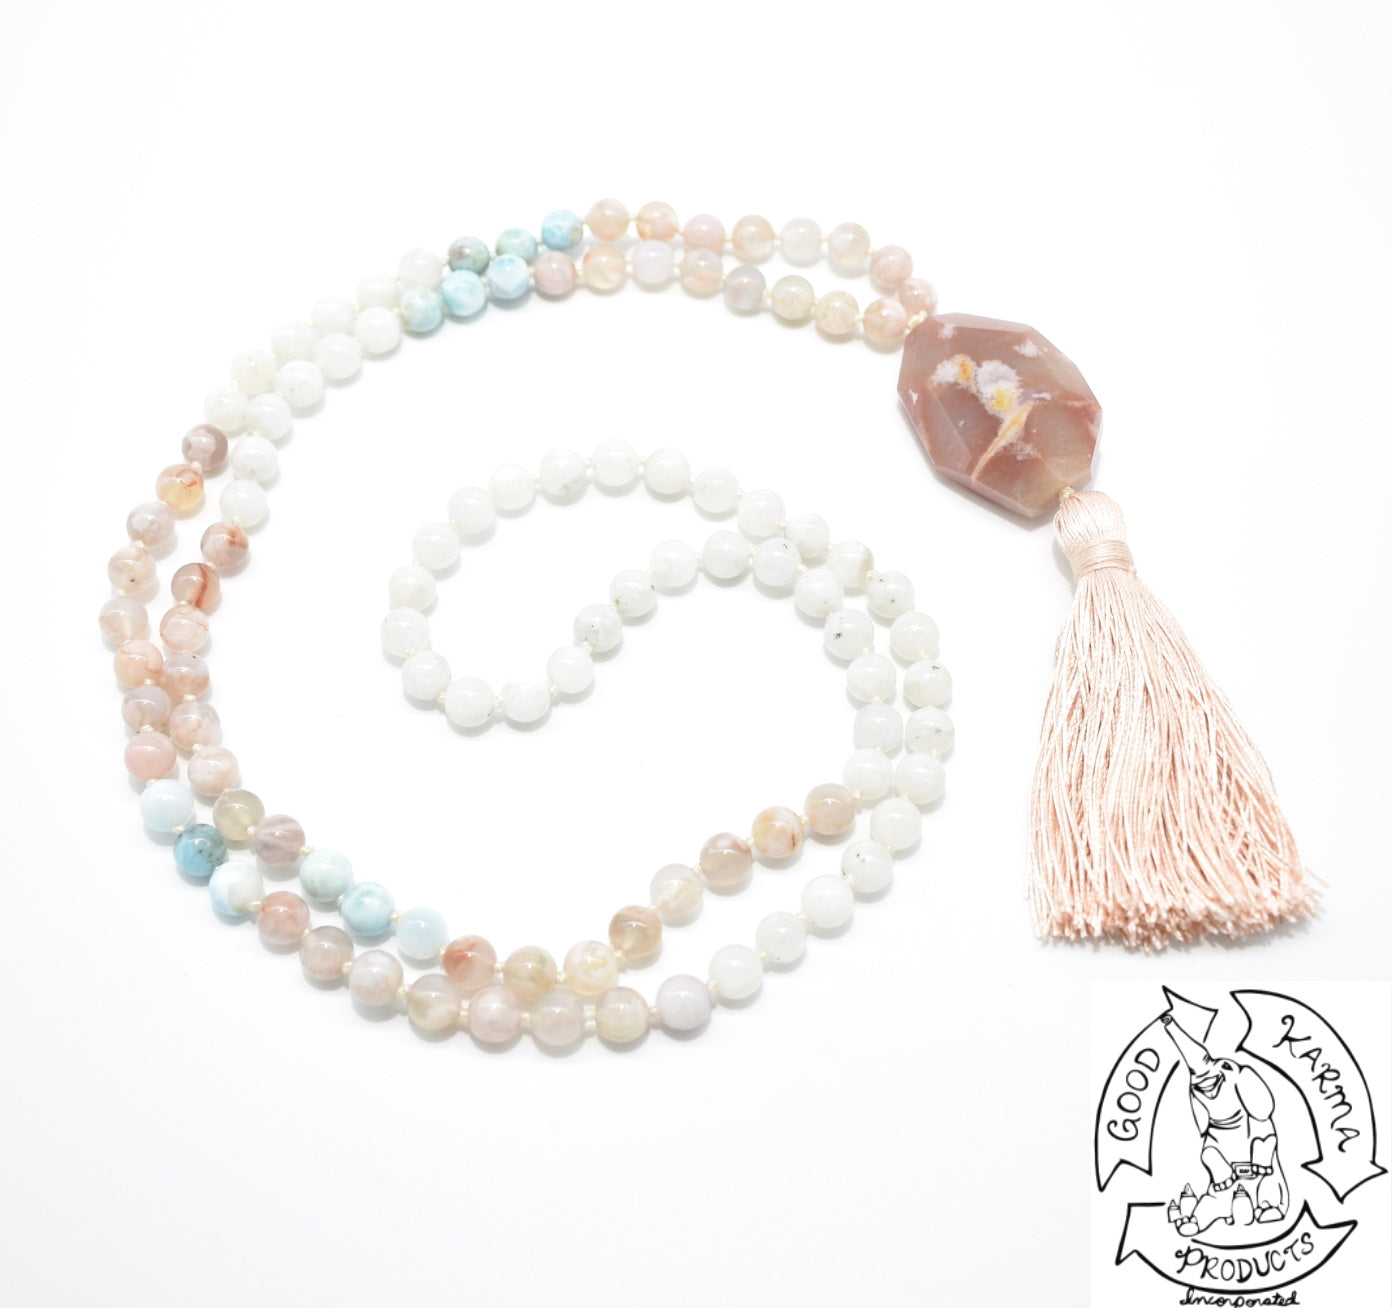 Flower Agate, Larimar, and Moonstone Handmade Mala